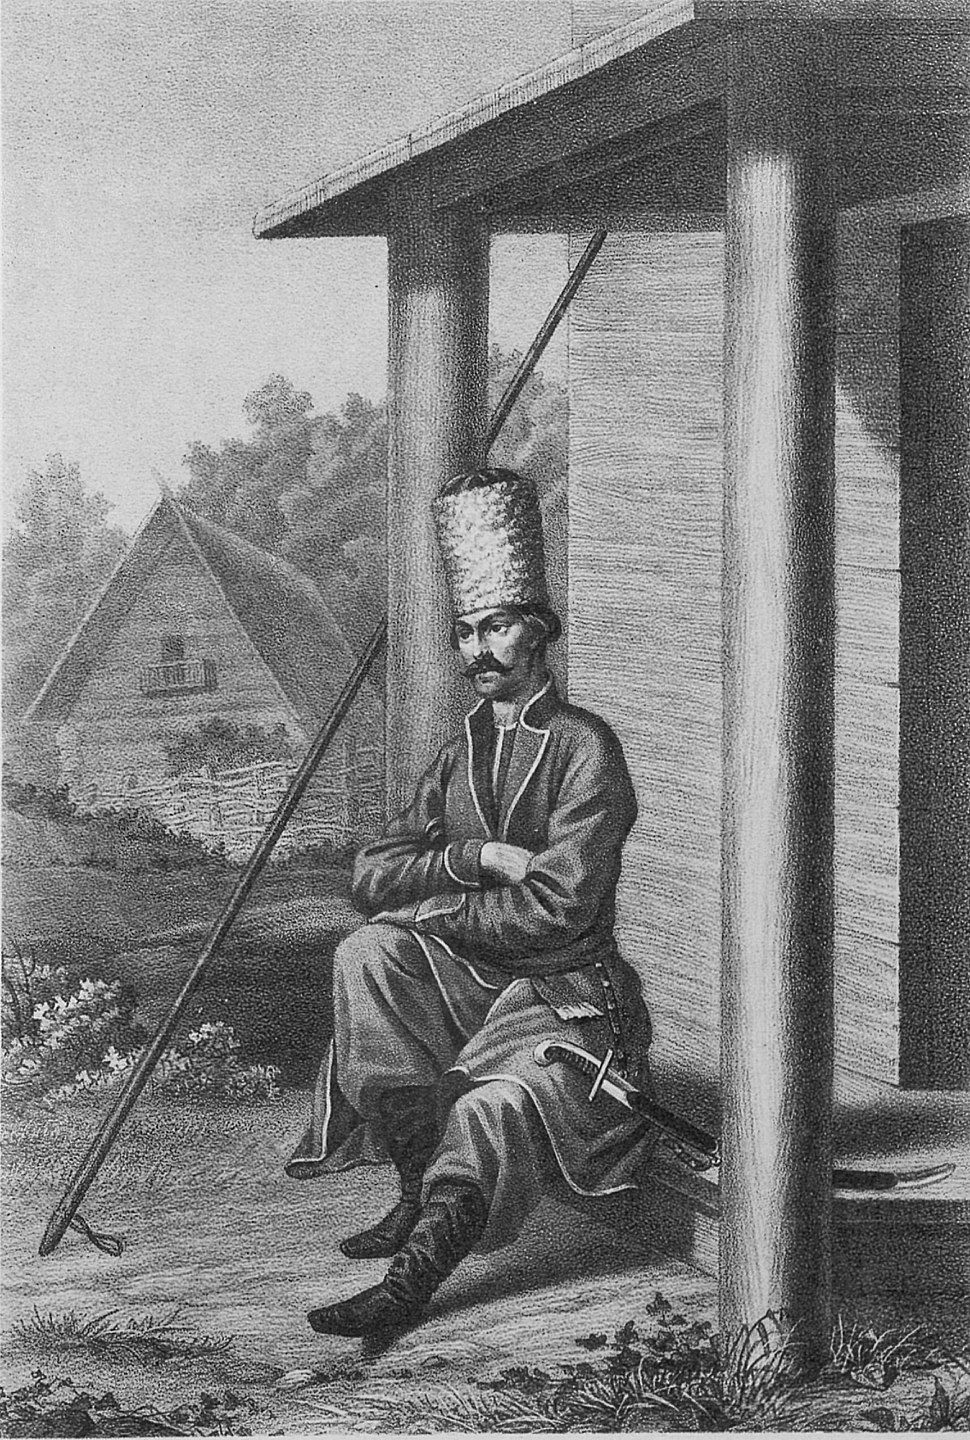 06 812 Book illustrations of Historical description of the clothes and weapons of Russian troops